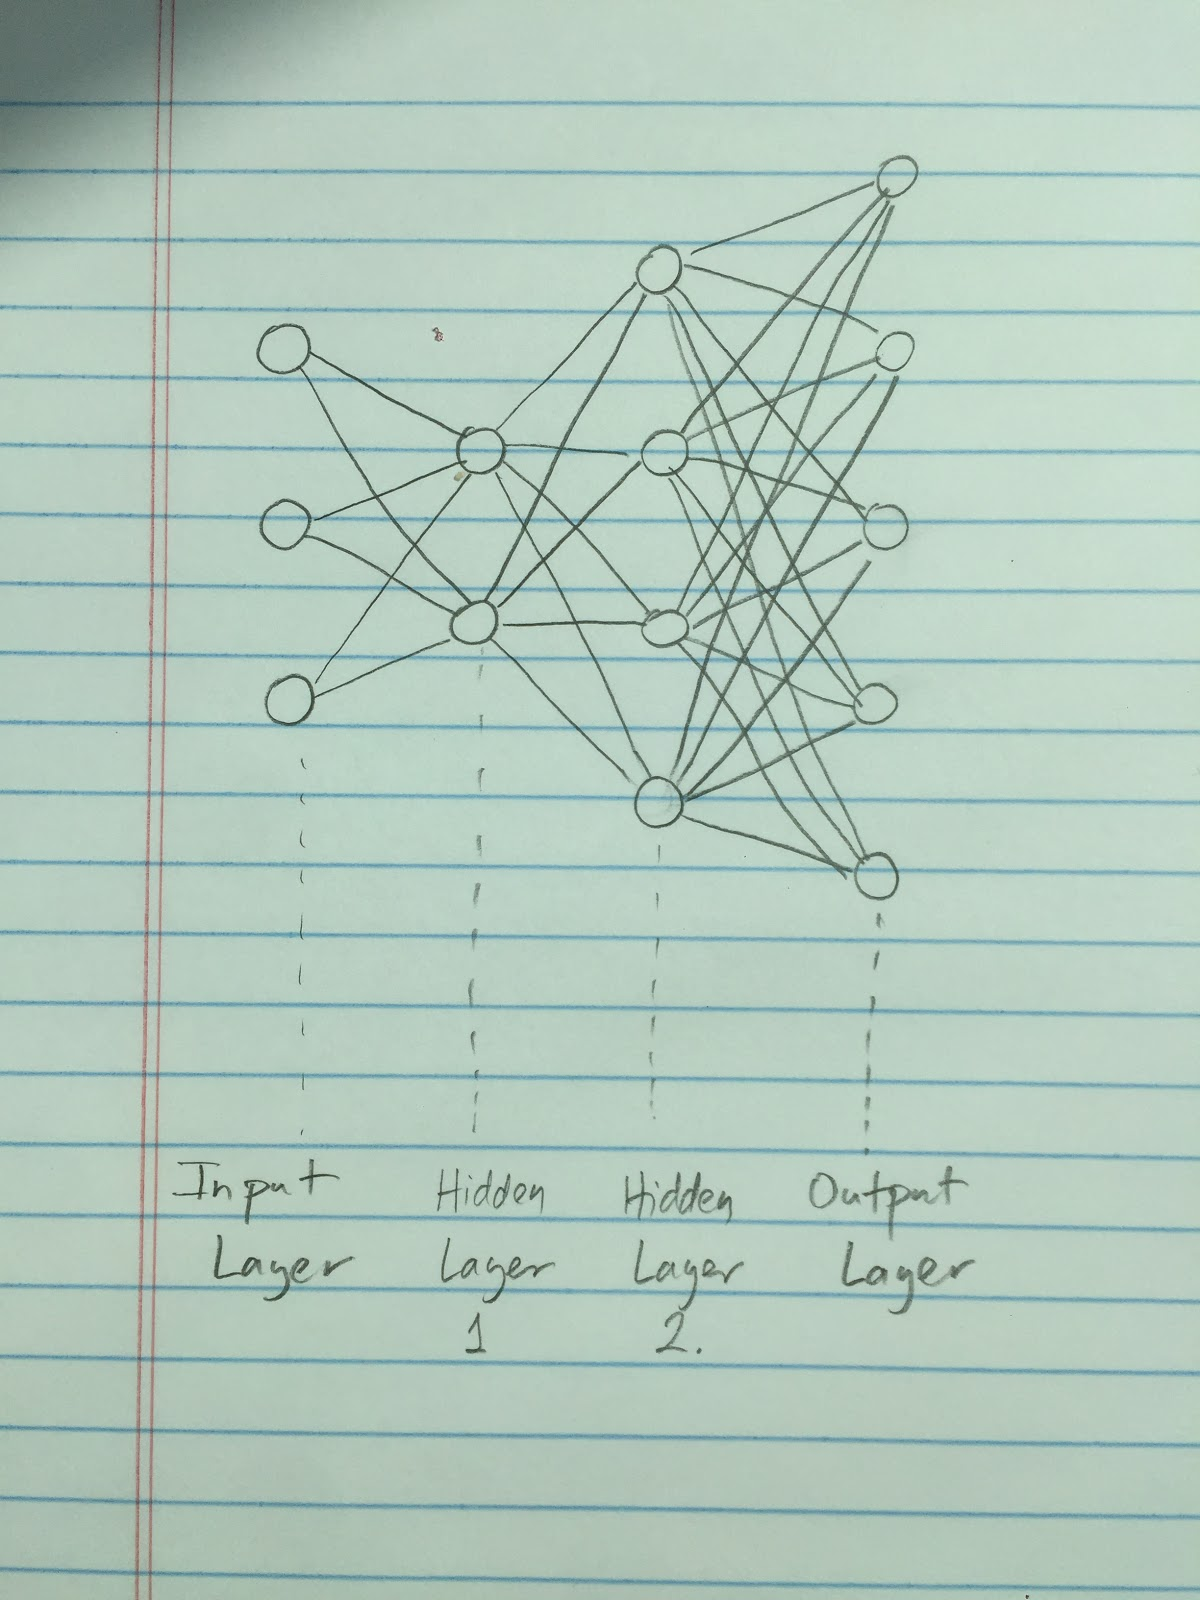 we represent a neural network by a bunch of nodes neurons and lines connections the nodes are arranged in columns called layers